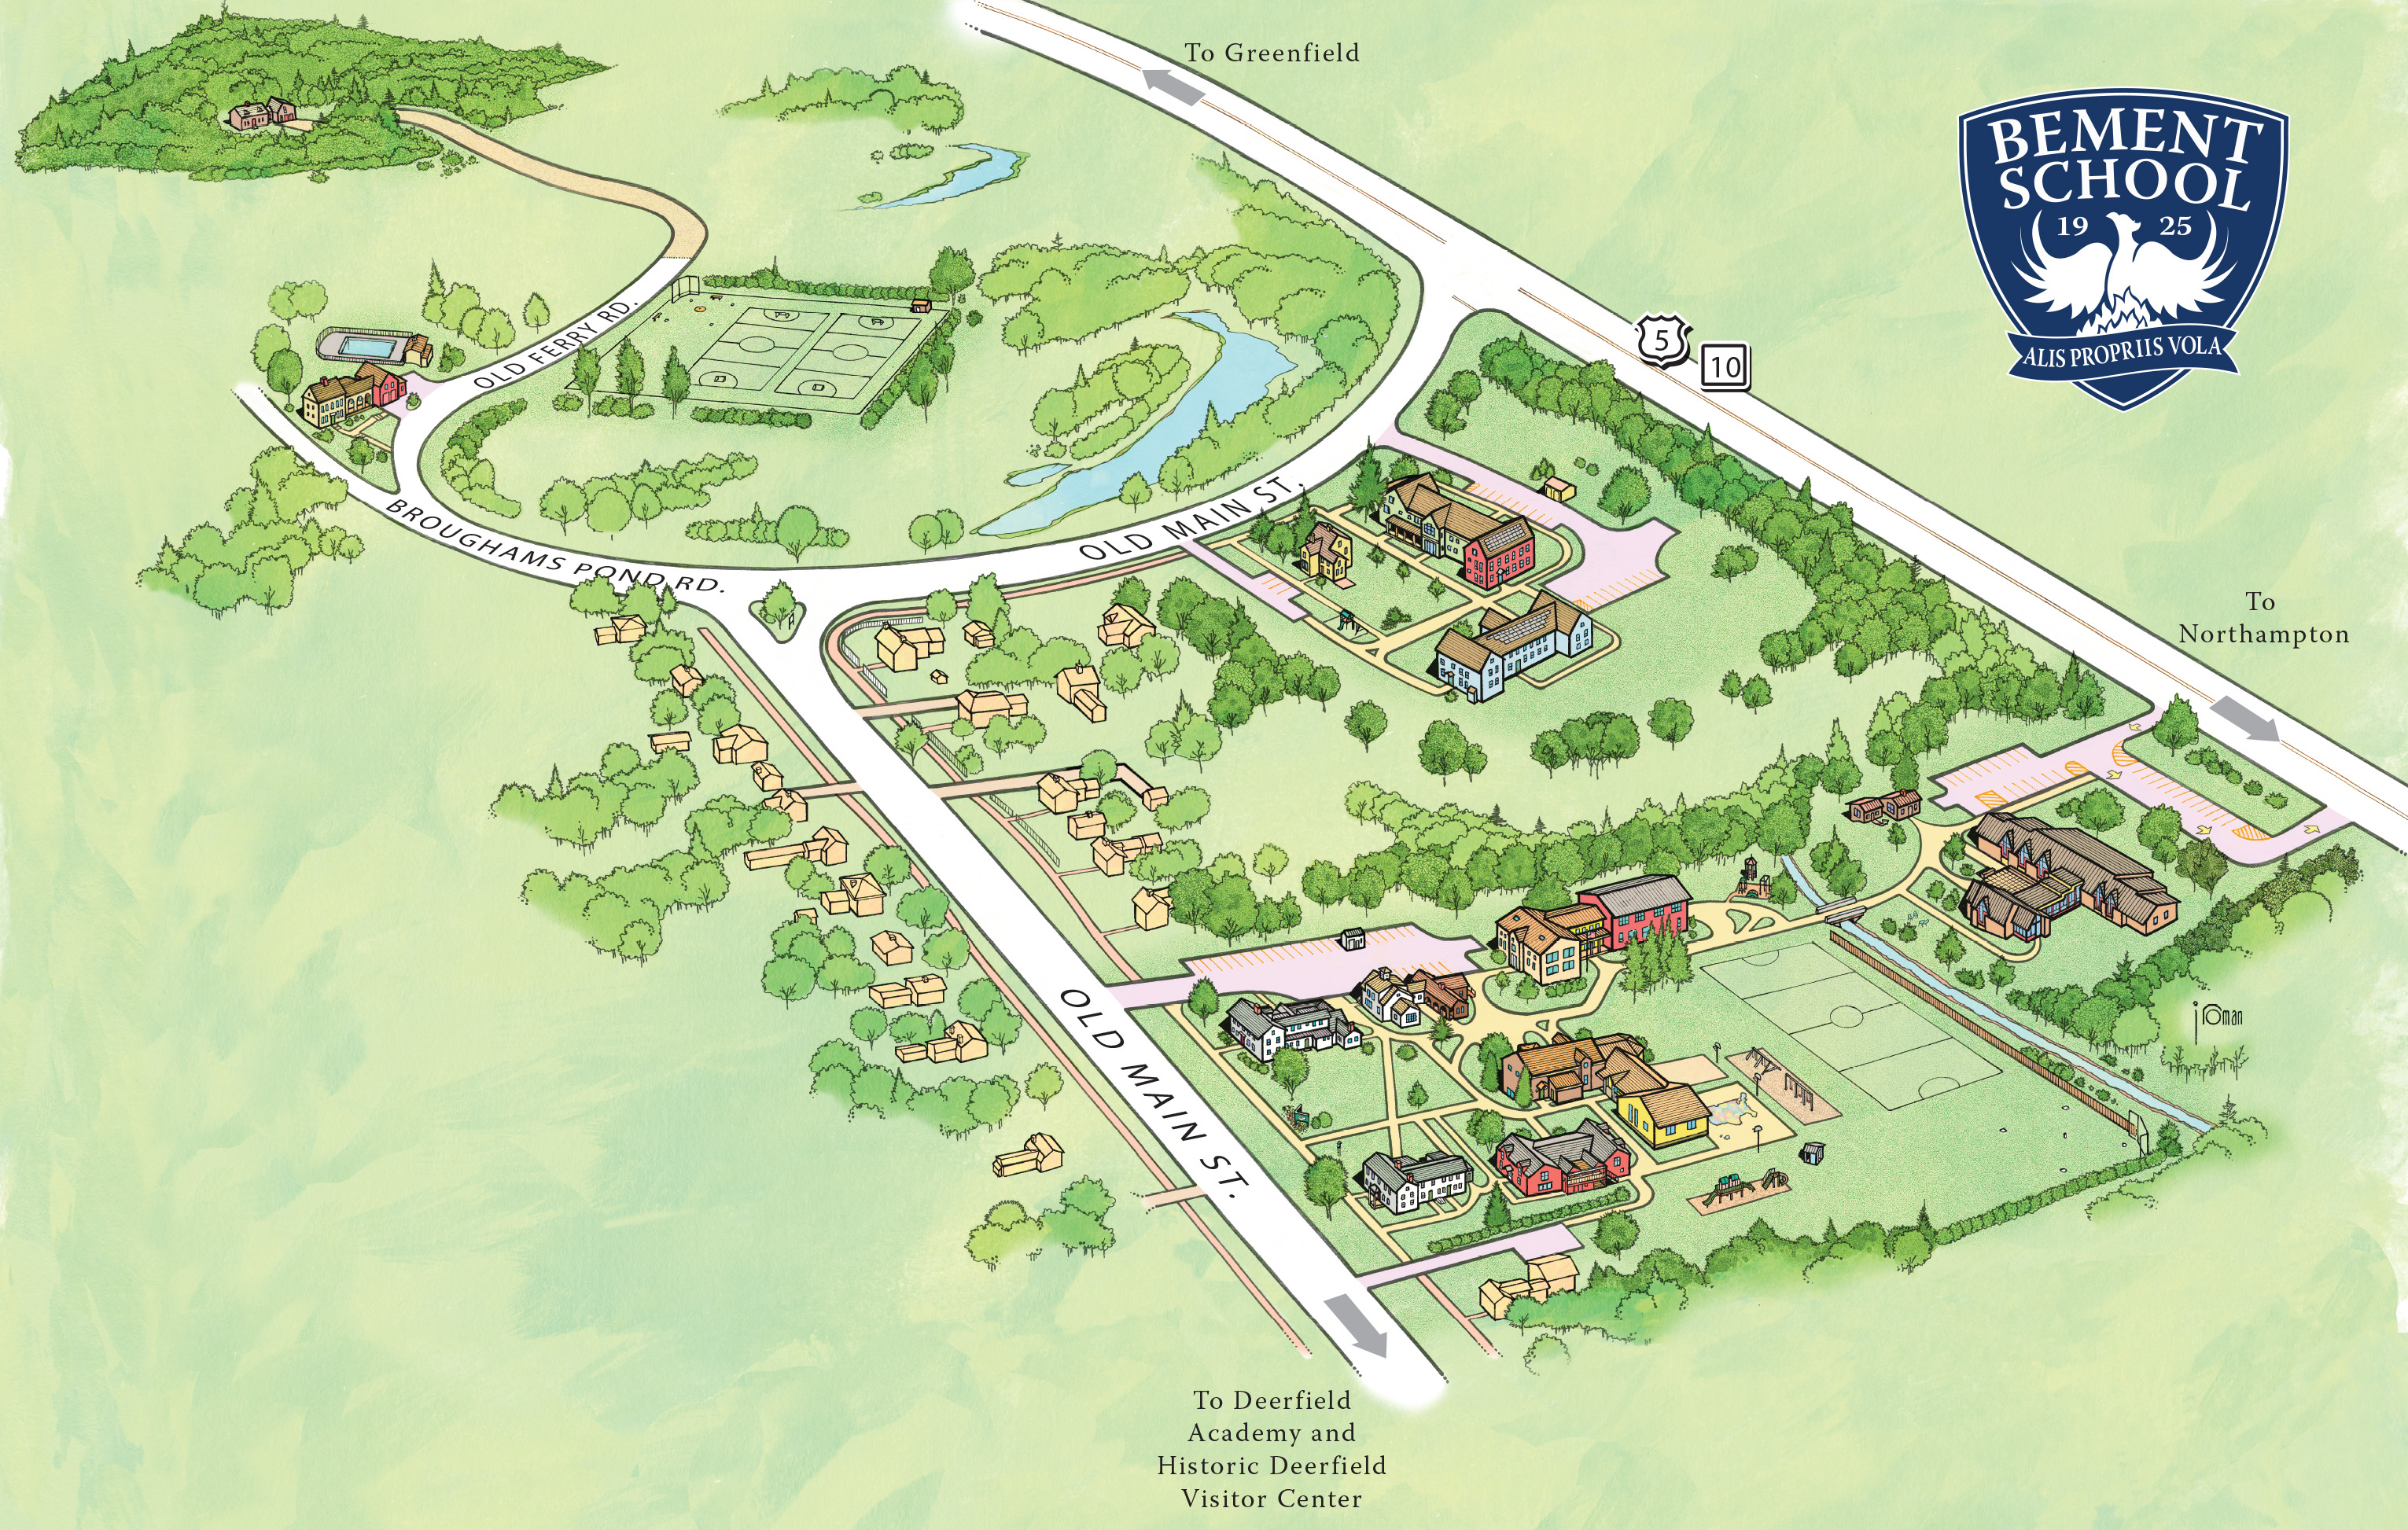 Campus Map The Bement School